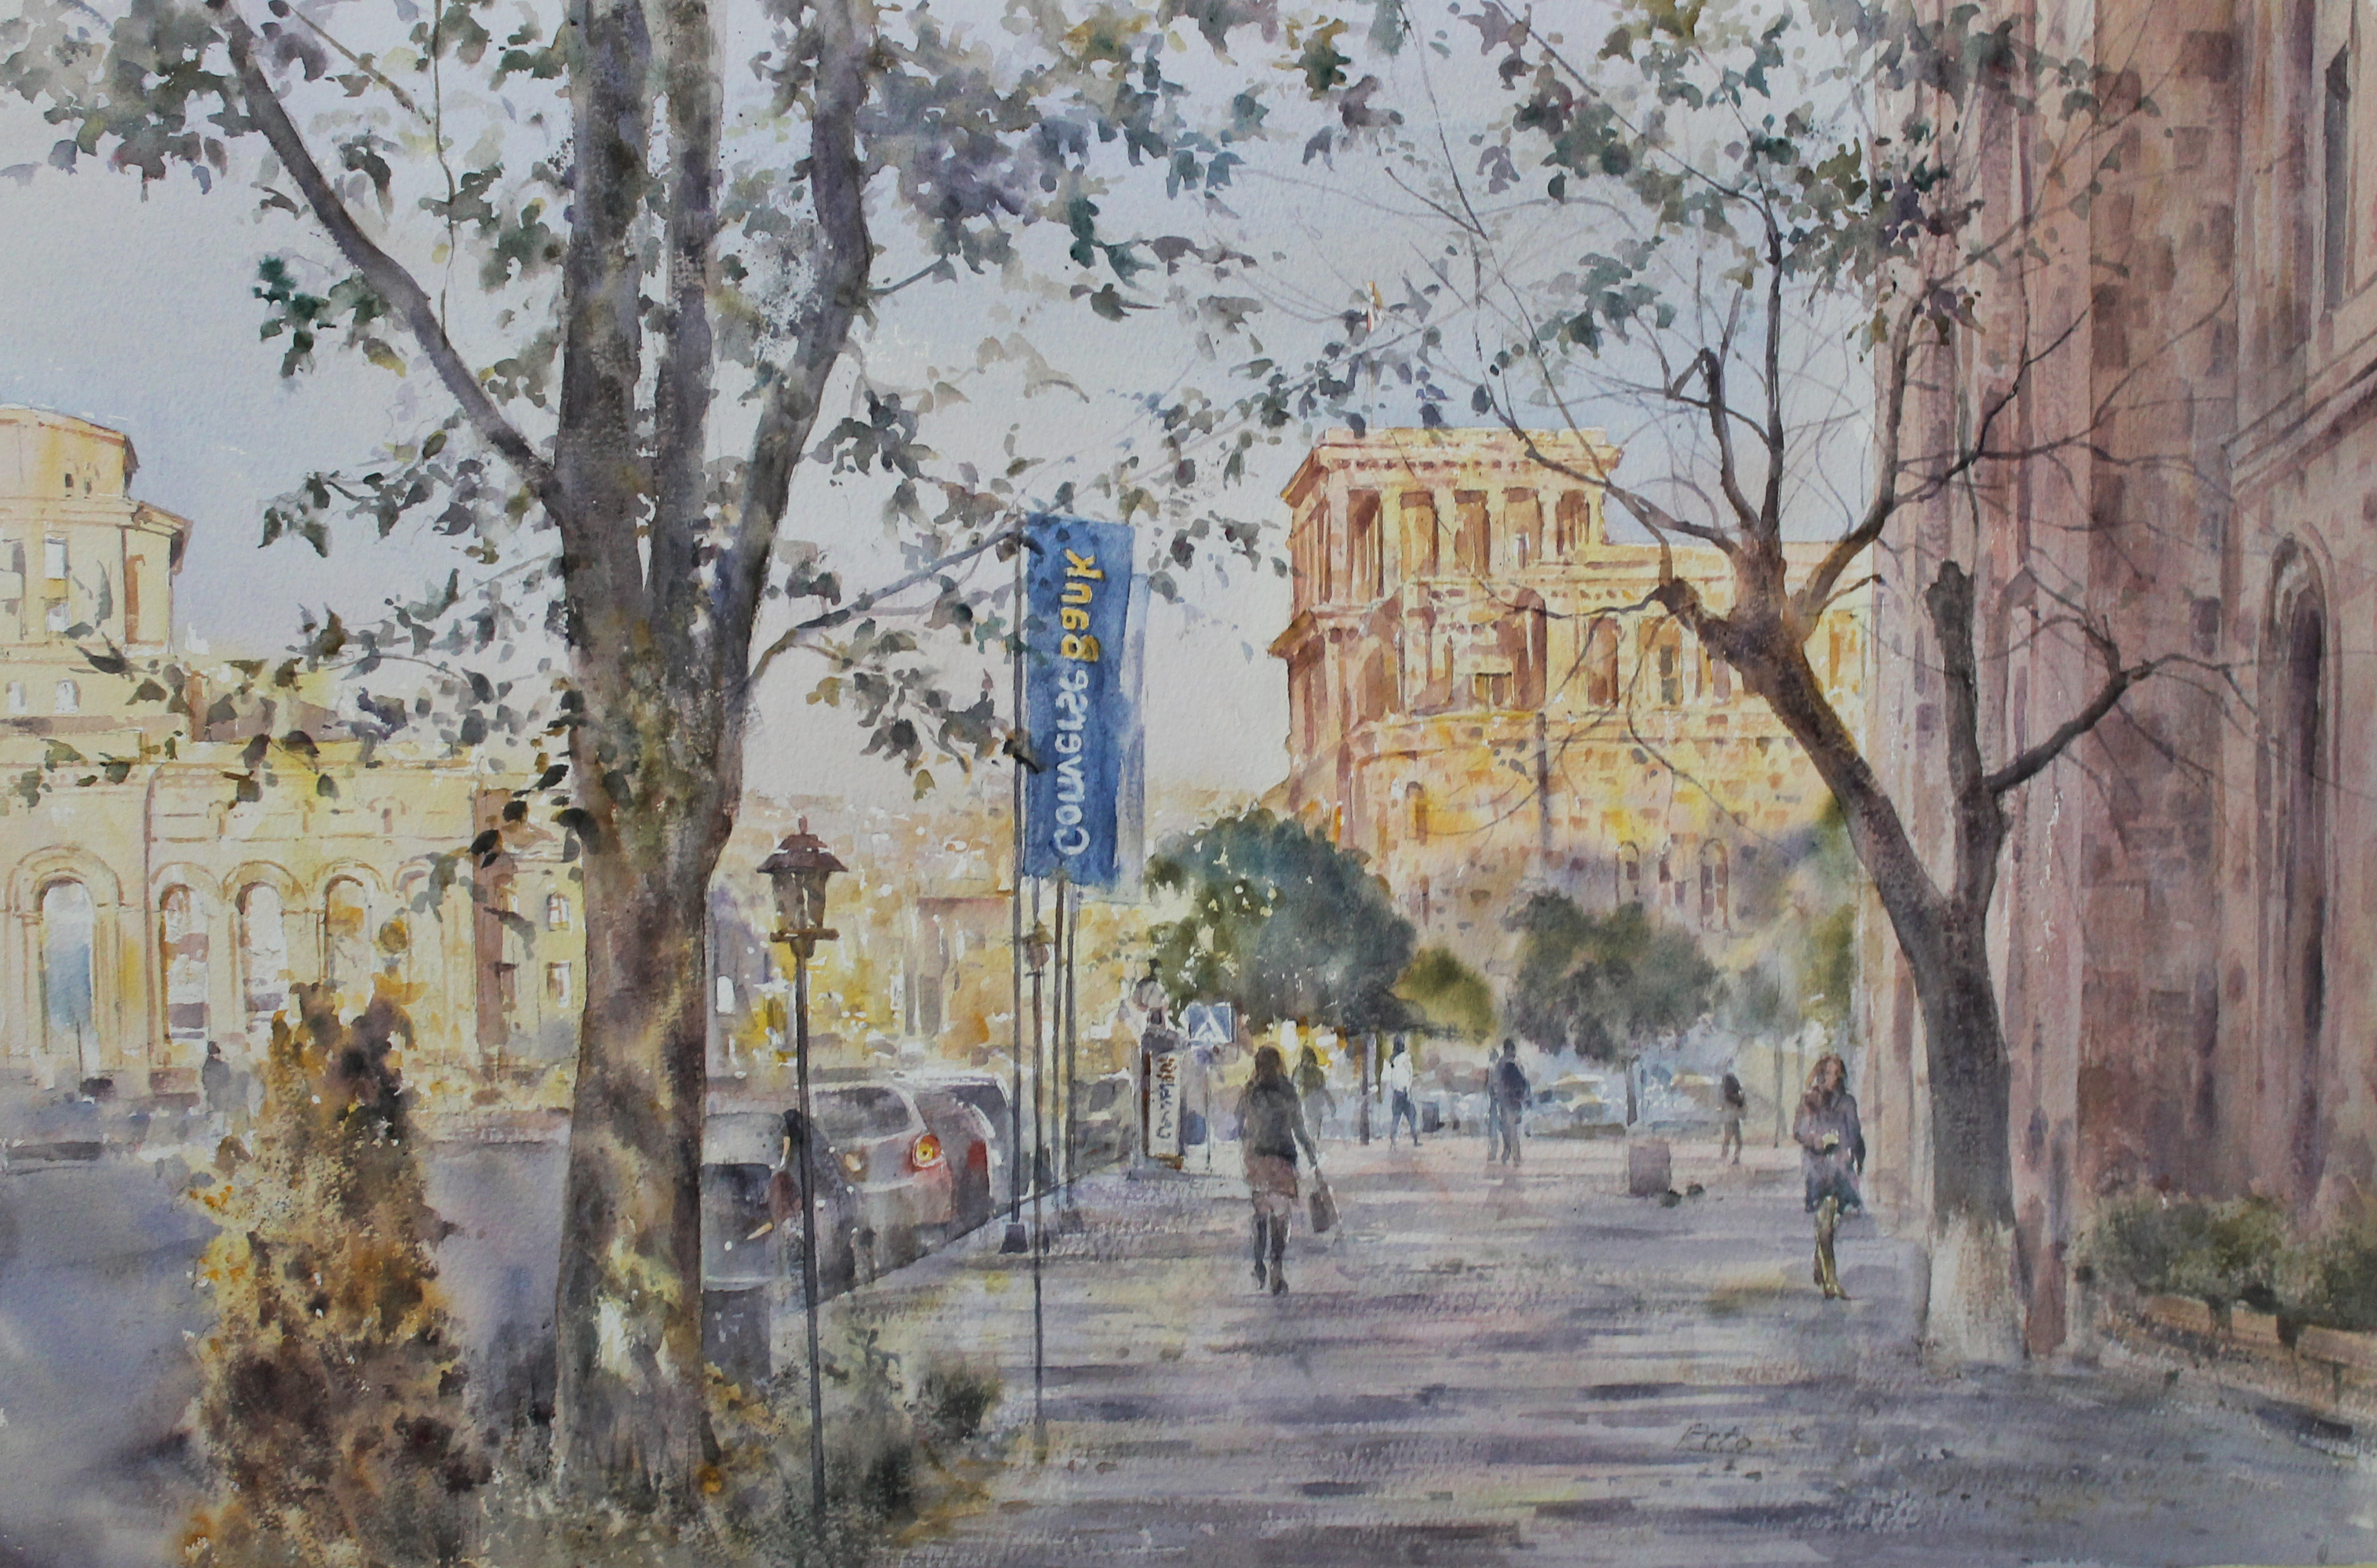 Converse Bank: exhibition of paintings by artist Peto Poghosyan